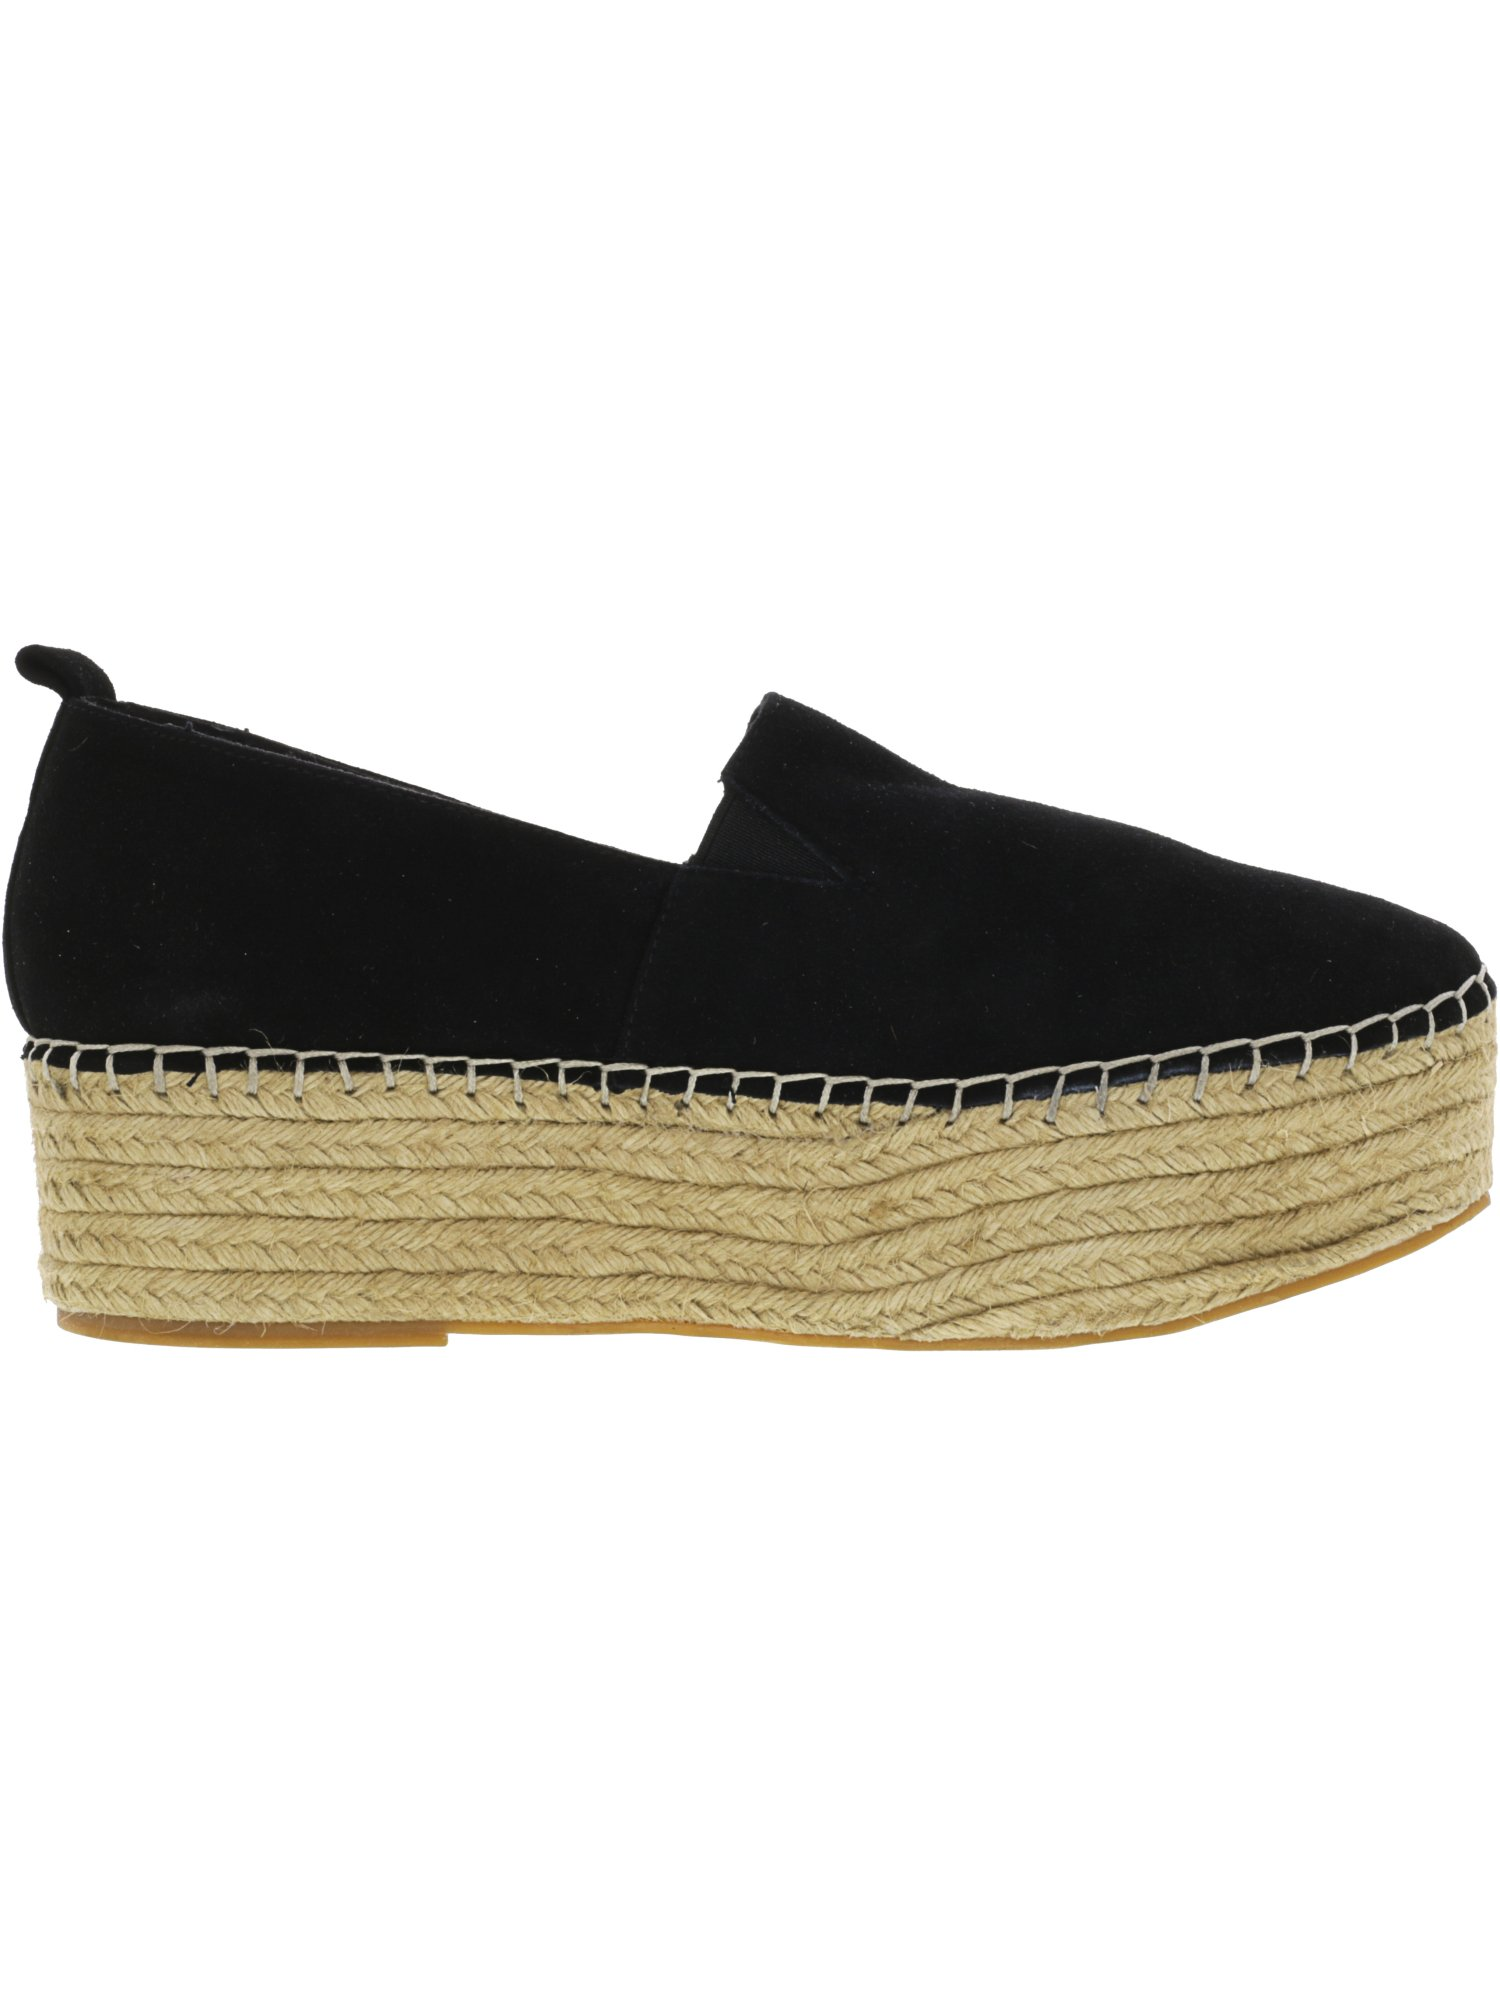 Steve-Madden-Women-039-s-Drill-Suede-Ankle-High-Slip-On-Shoes thumbnail 5